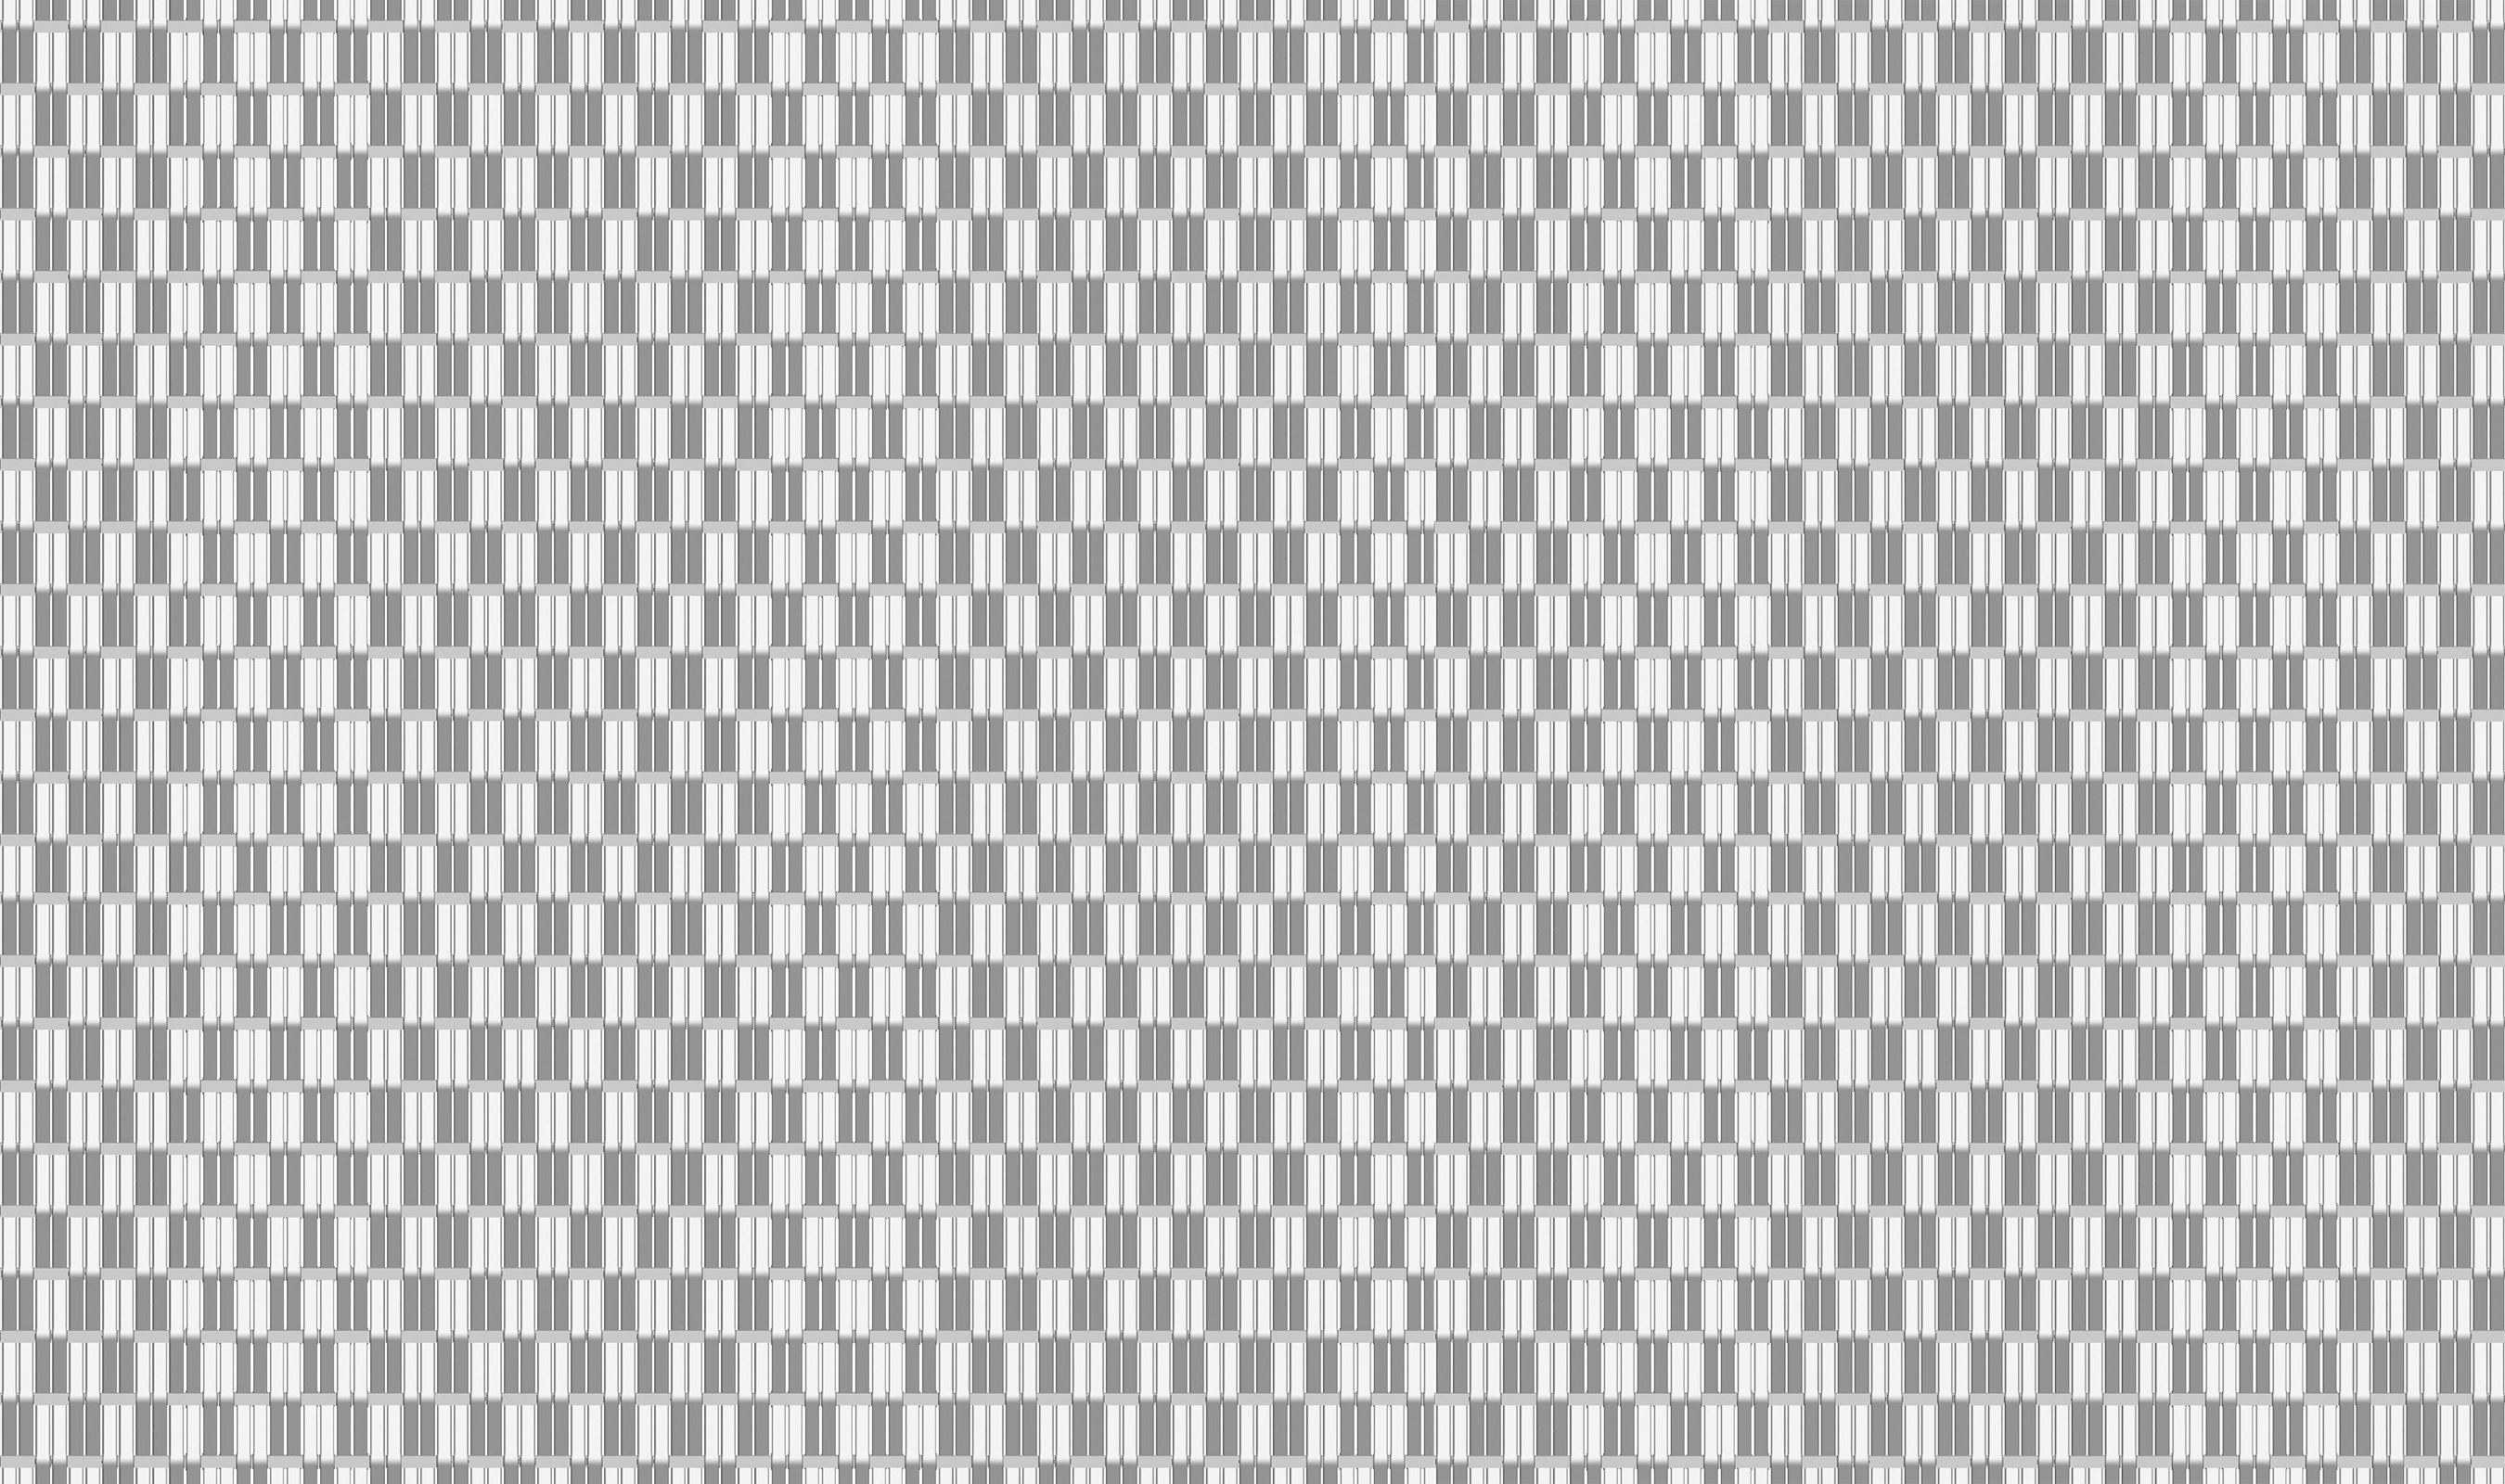 DS-4 opaque wire mesh